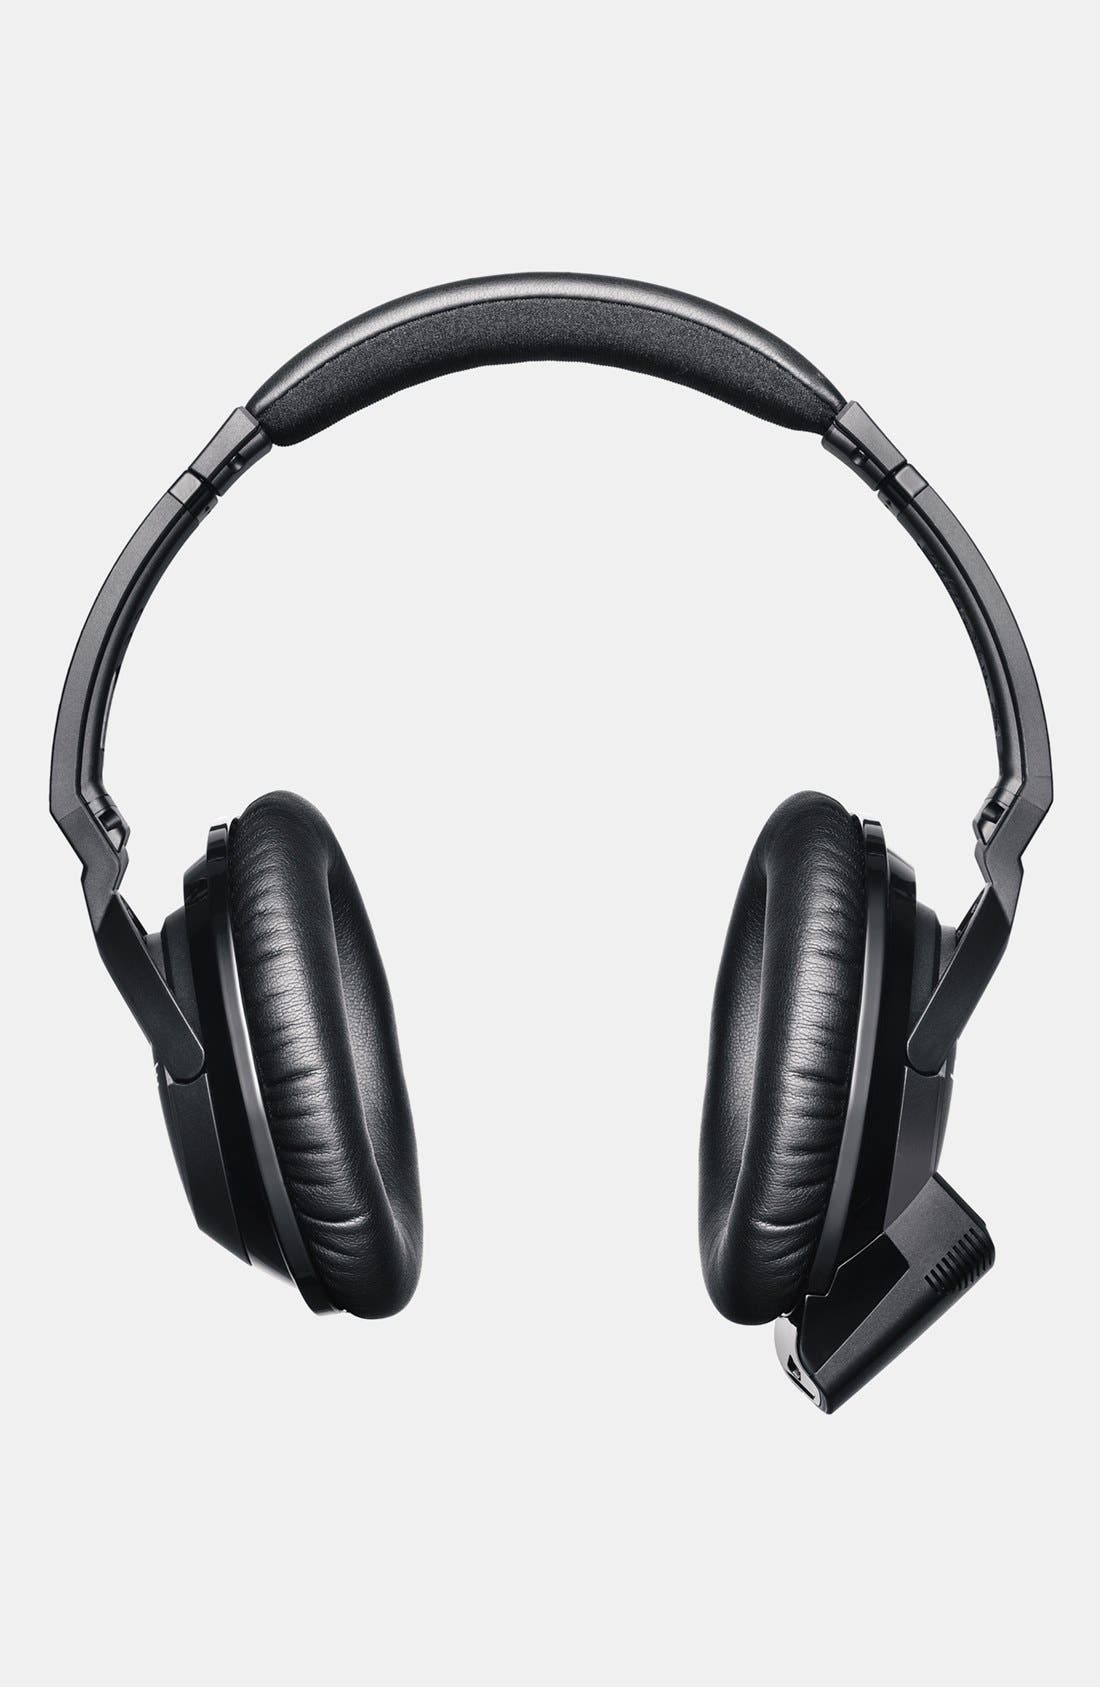 BOSE<SUP>®</SUP> SoundLink<sup>®</sup> Around-Ear Wireless Audio Headphones